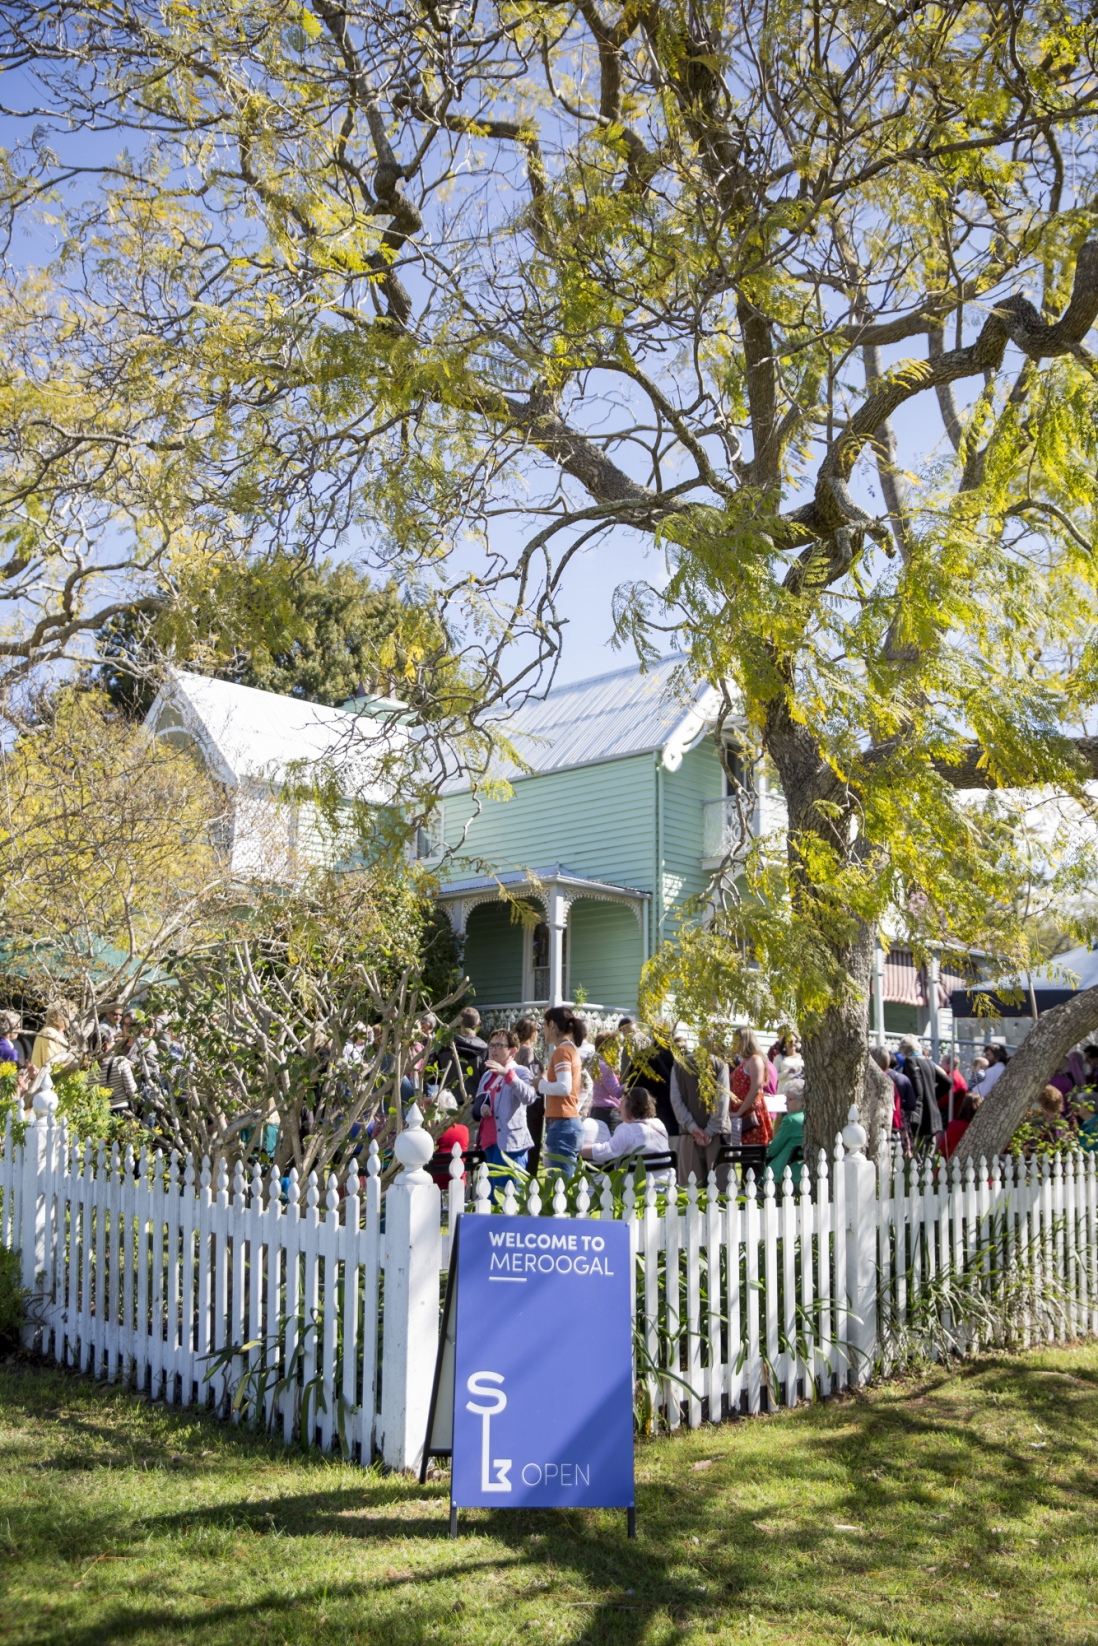 Exterior of green house with white picket fence and crowd of people in garden.